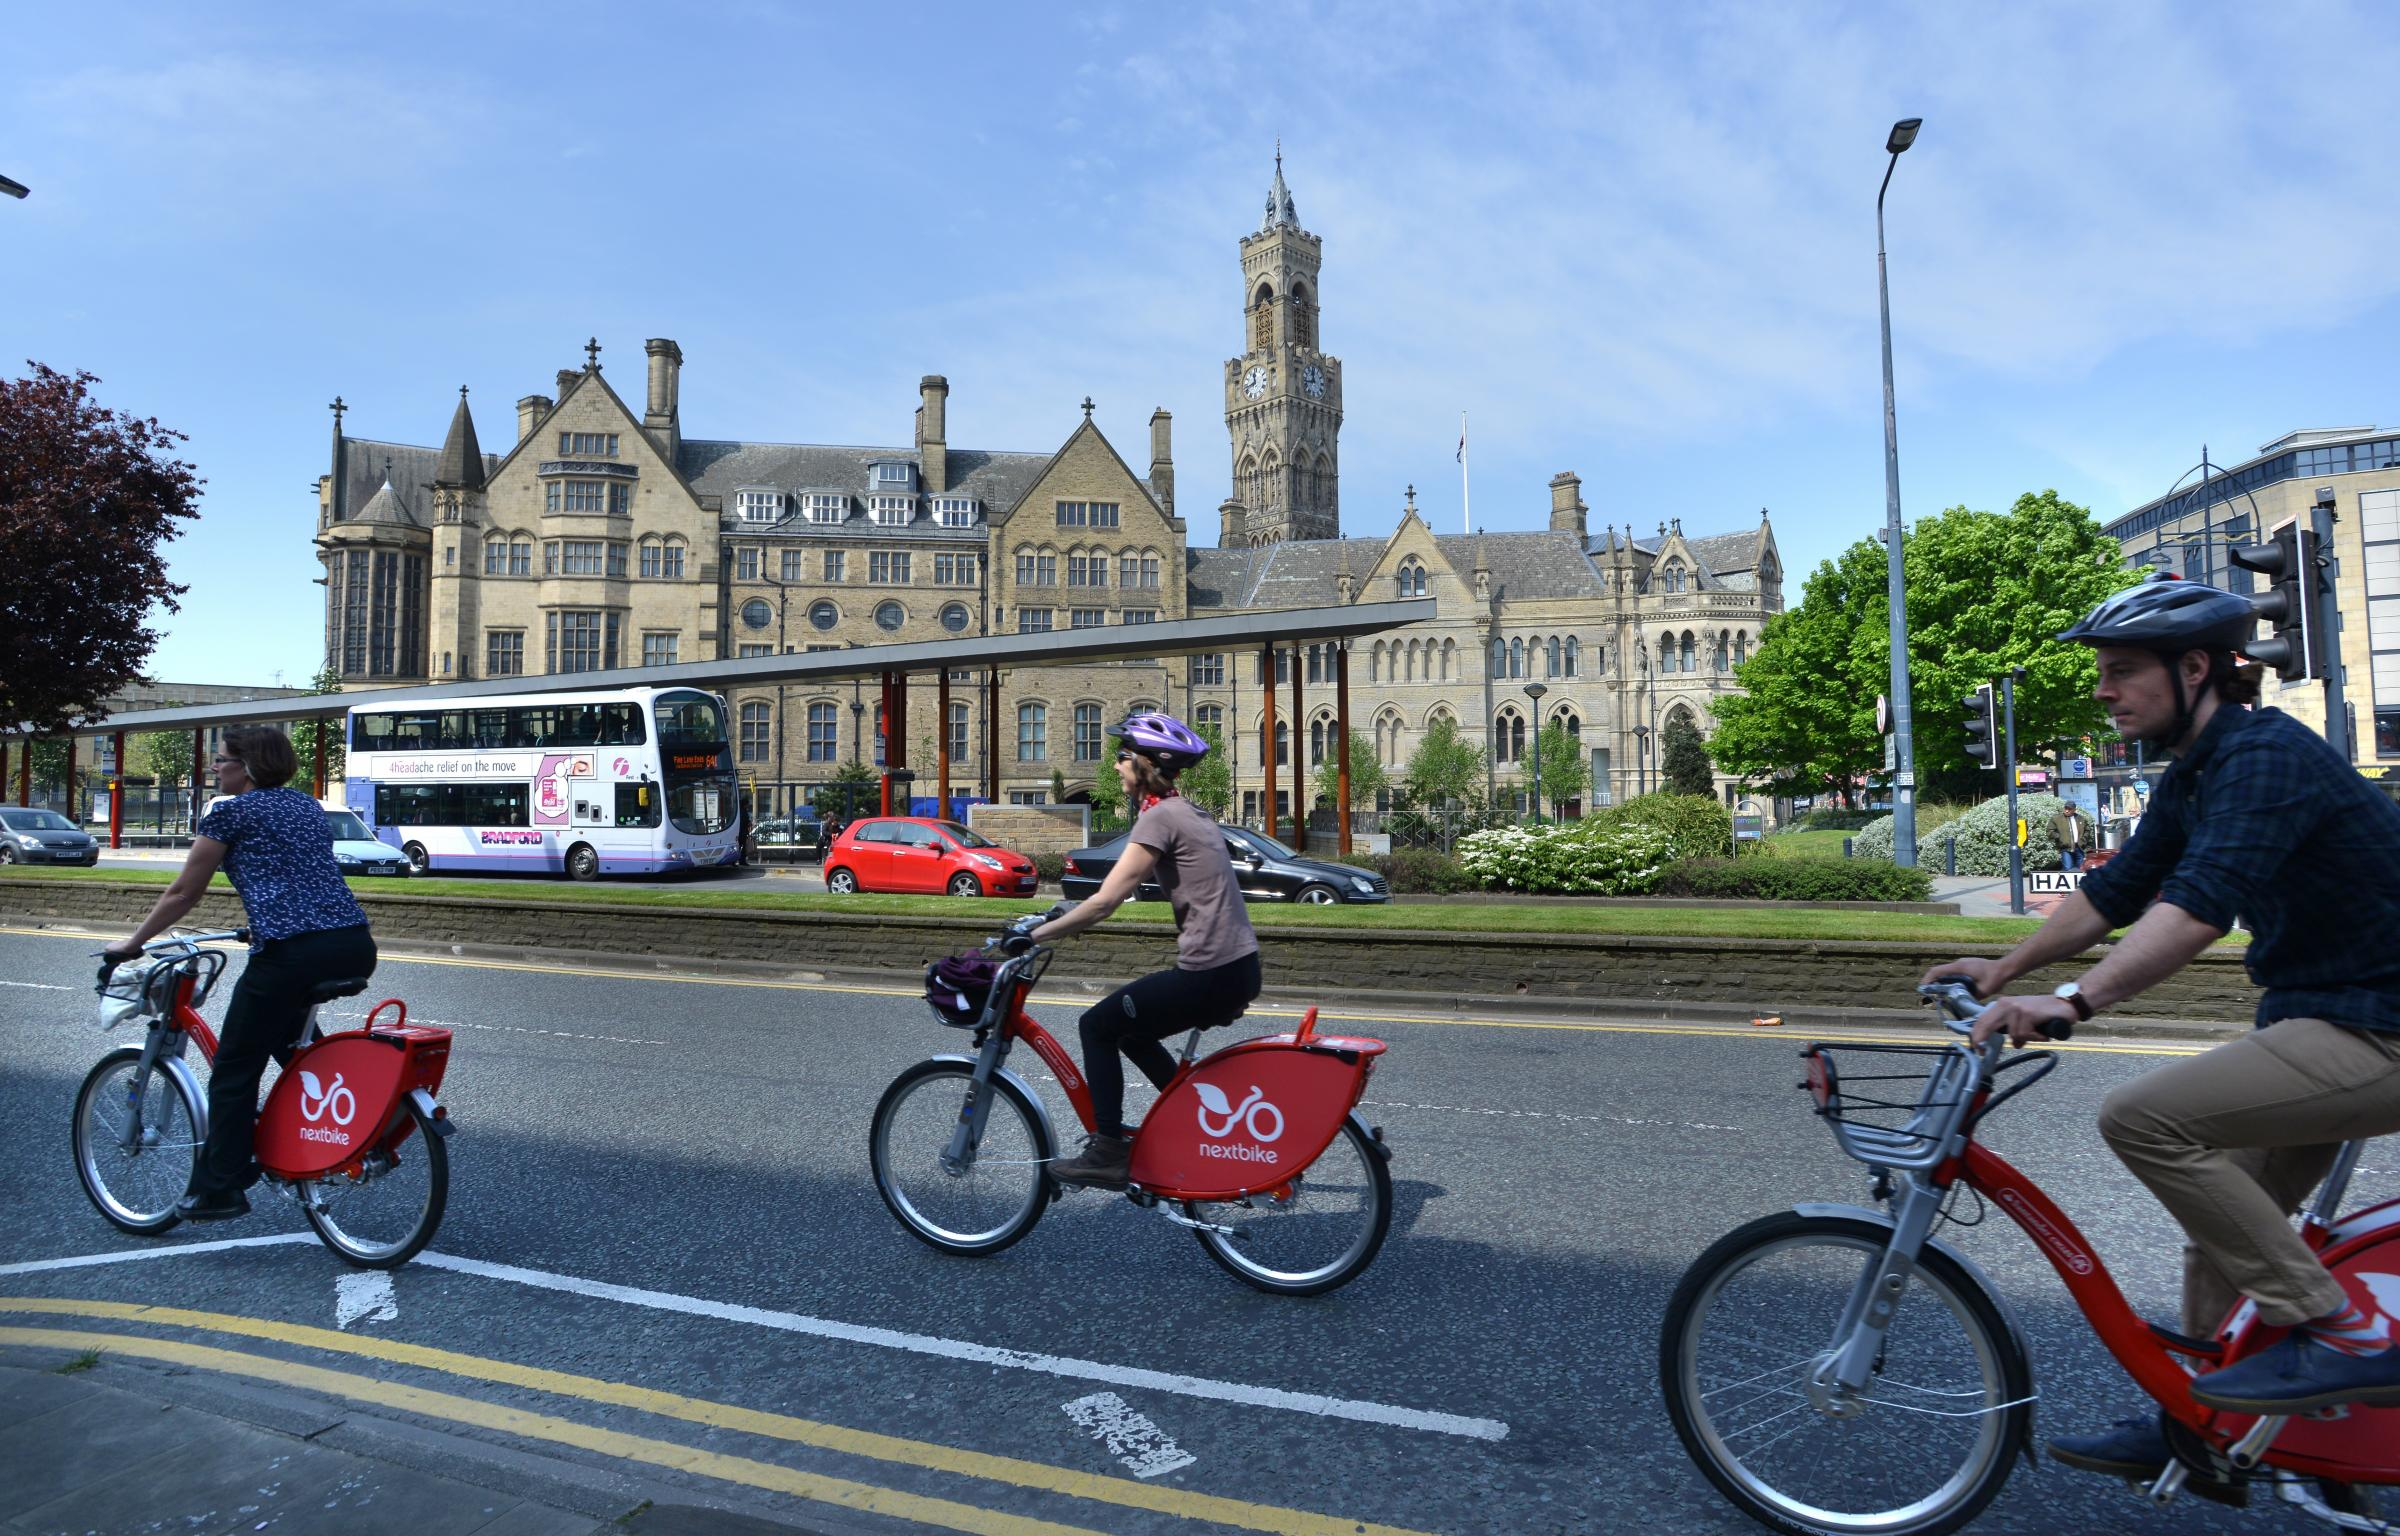 Cyclists in Bradford city at the start of a Cycle City conference at National Media Museum.